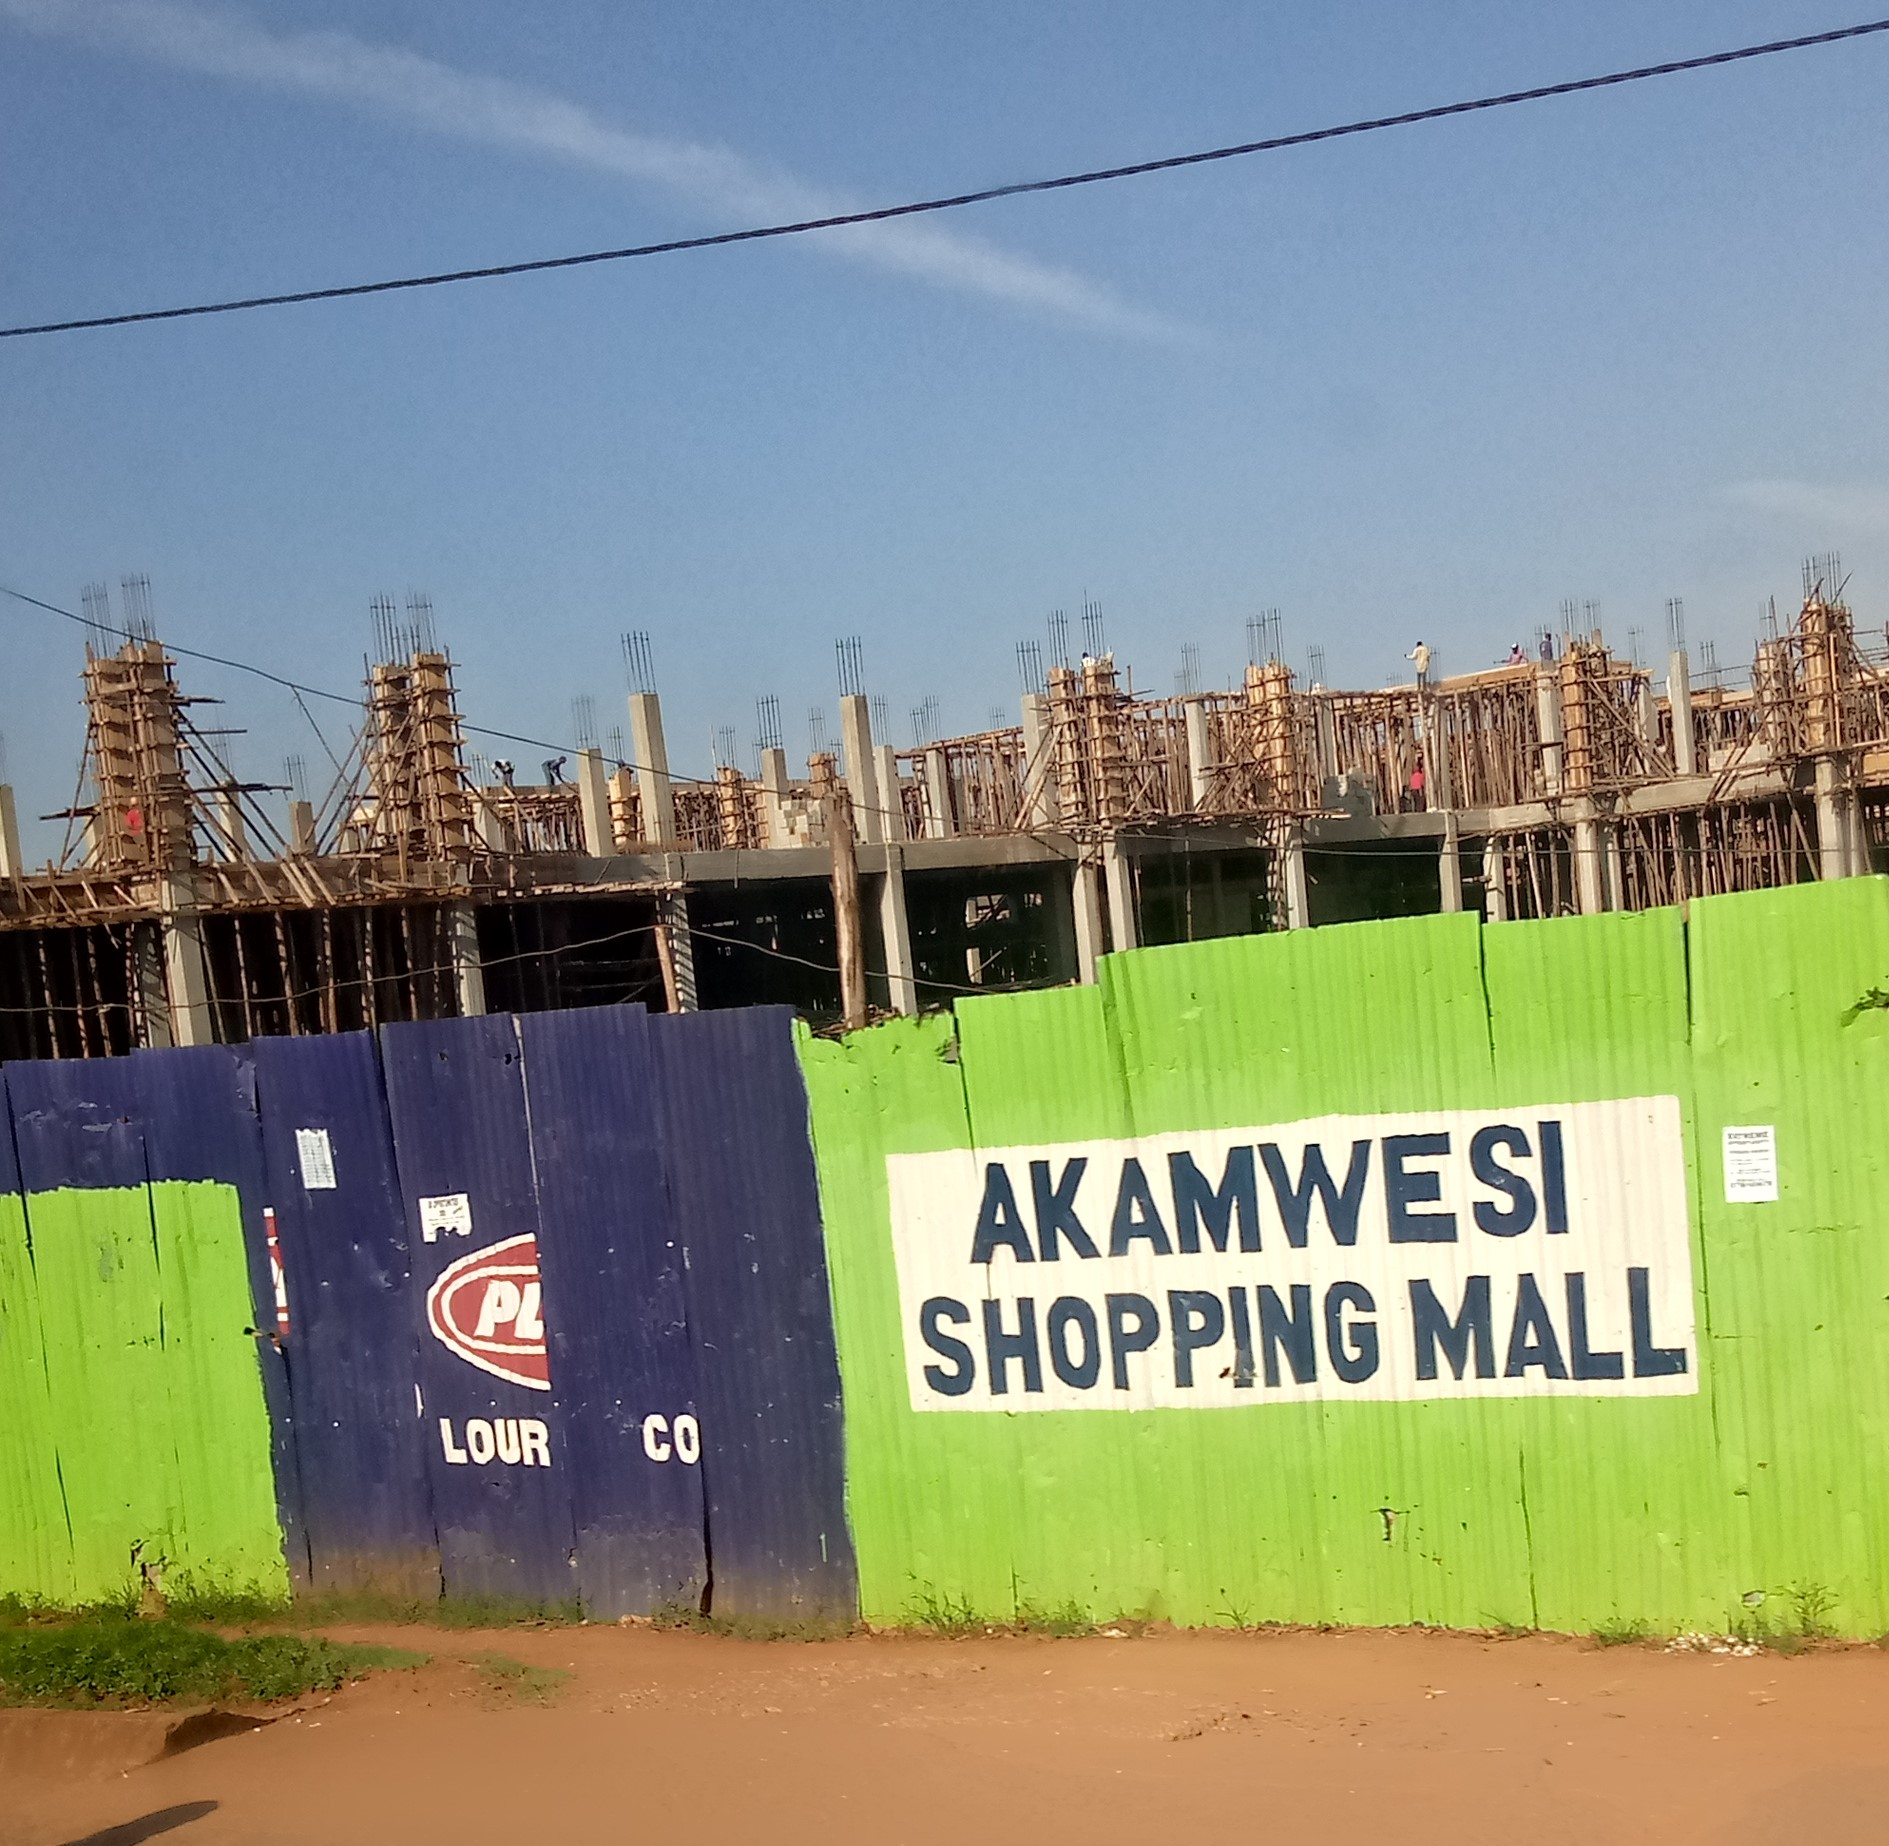 Upcoming Akamwesi shopping mall in Kampala (photos)